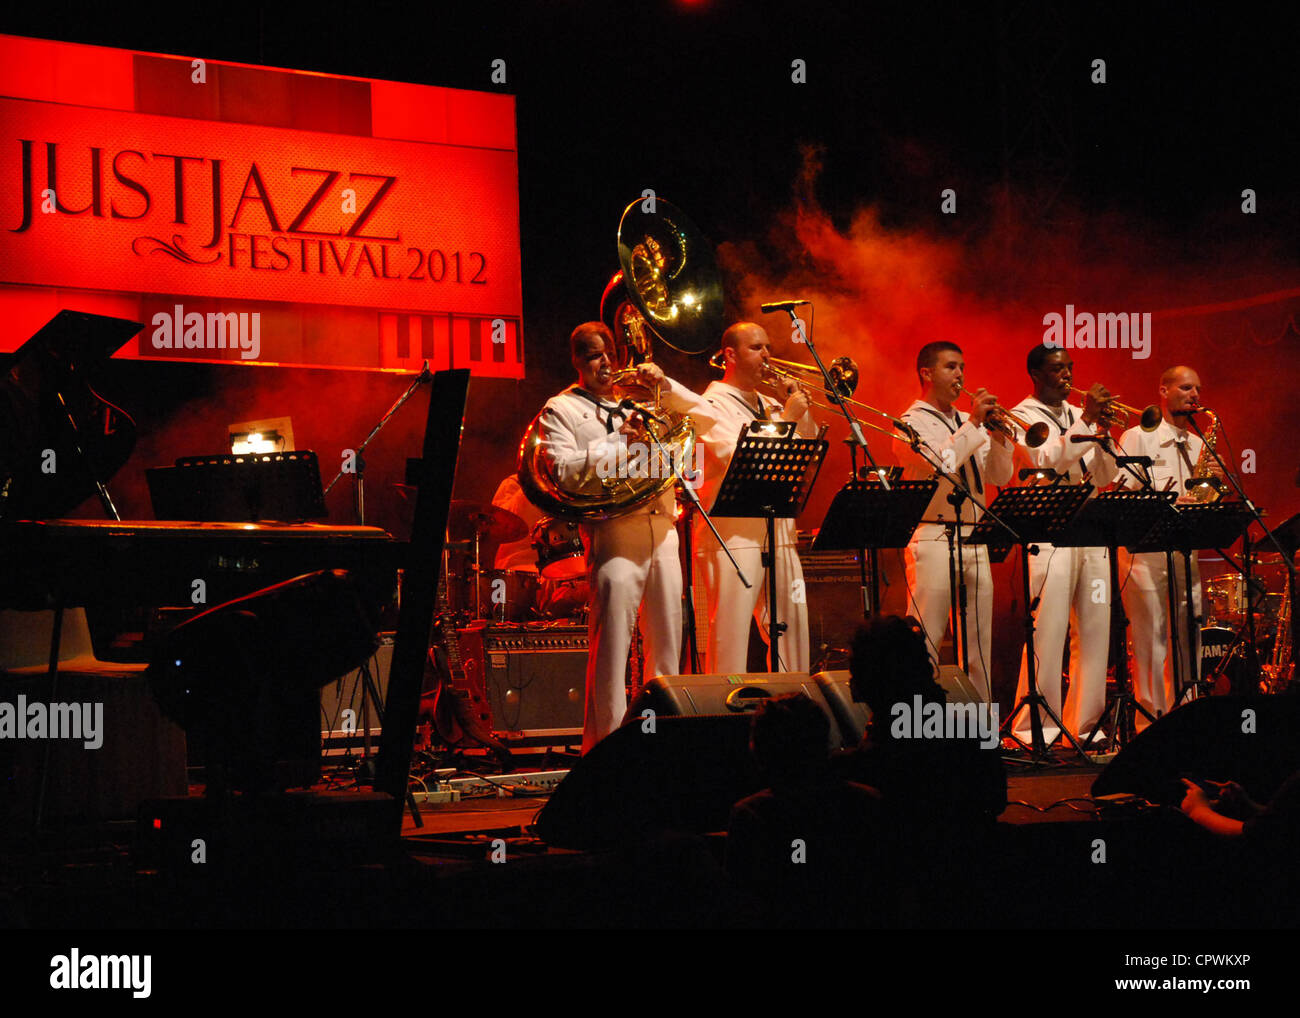 The U.S. Navy 7th Fleet Band, Orient Express, performs at a jazz festival during Cooperation Afloat Readiness and Stock Photo